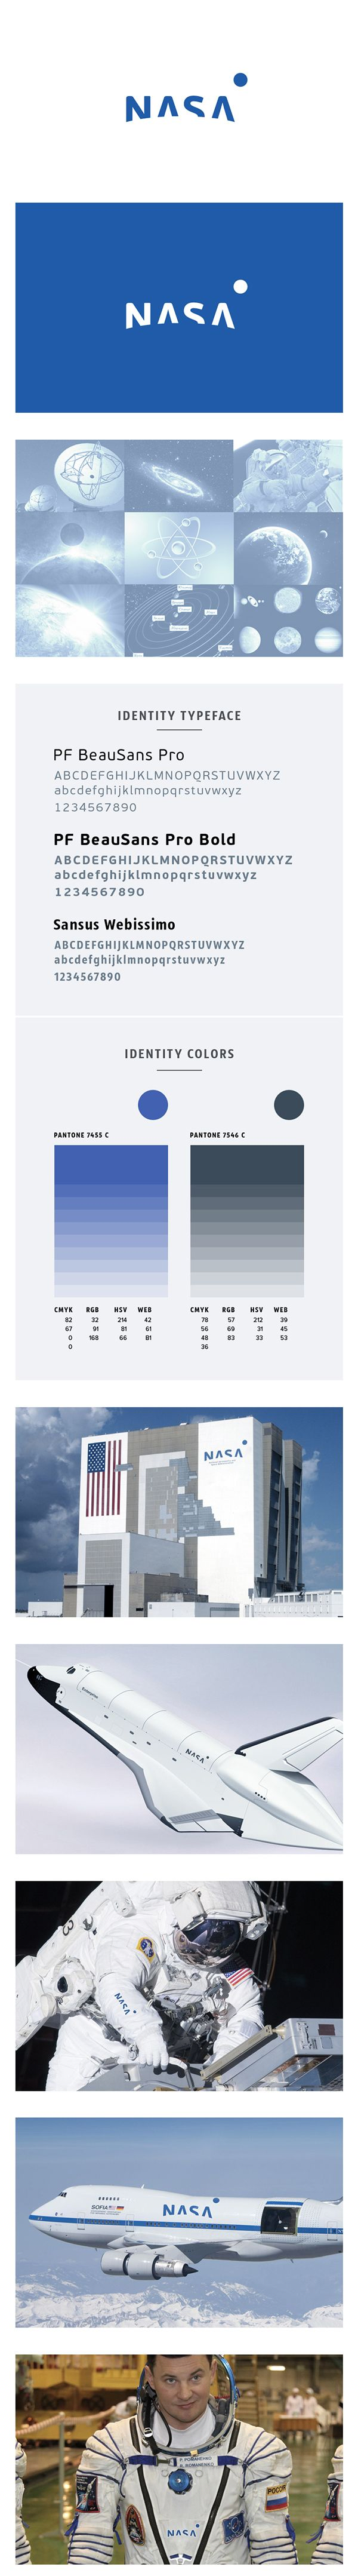 NASA branding - love this. So simple but clever use of negative space. #logo #branding #design #negativespace #space